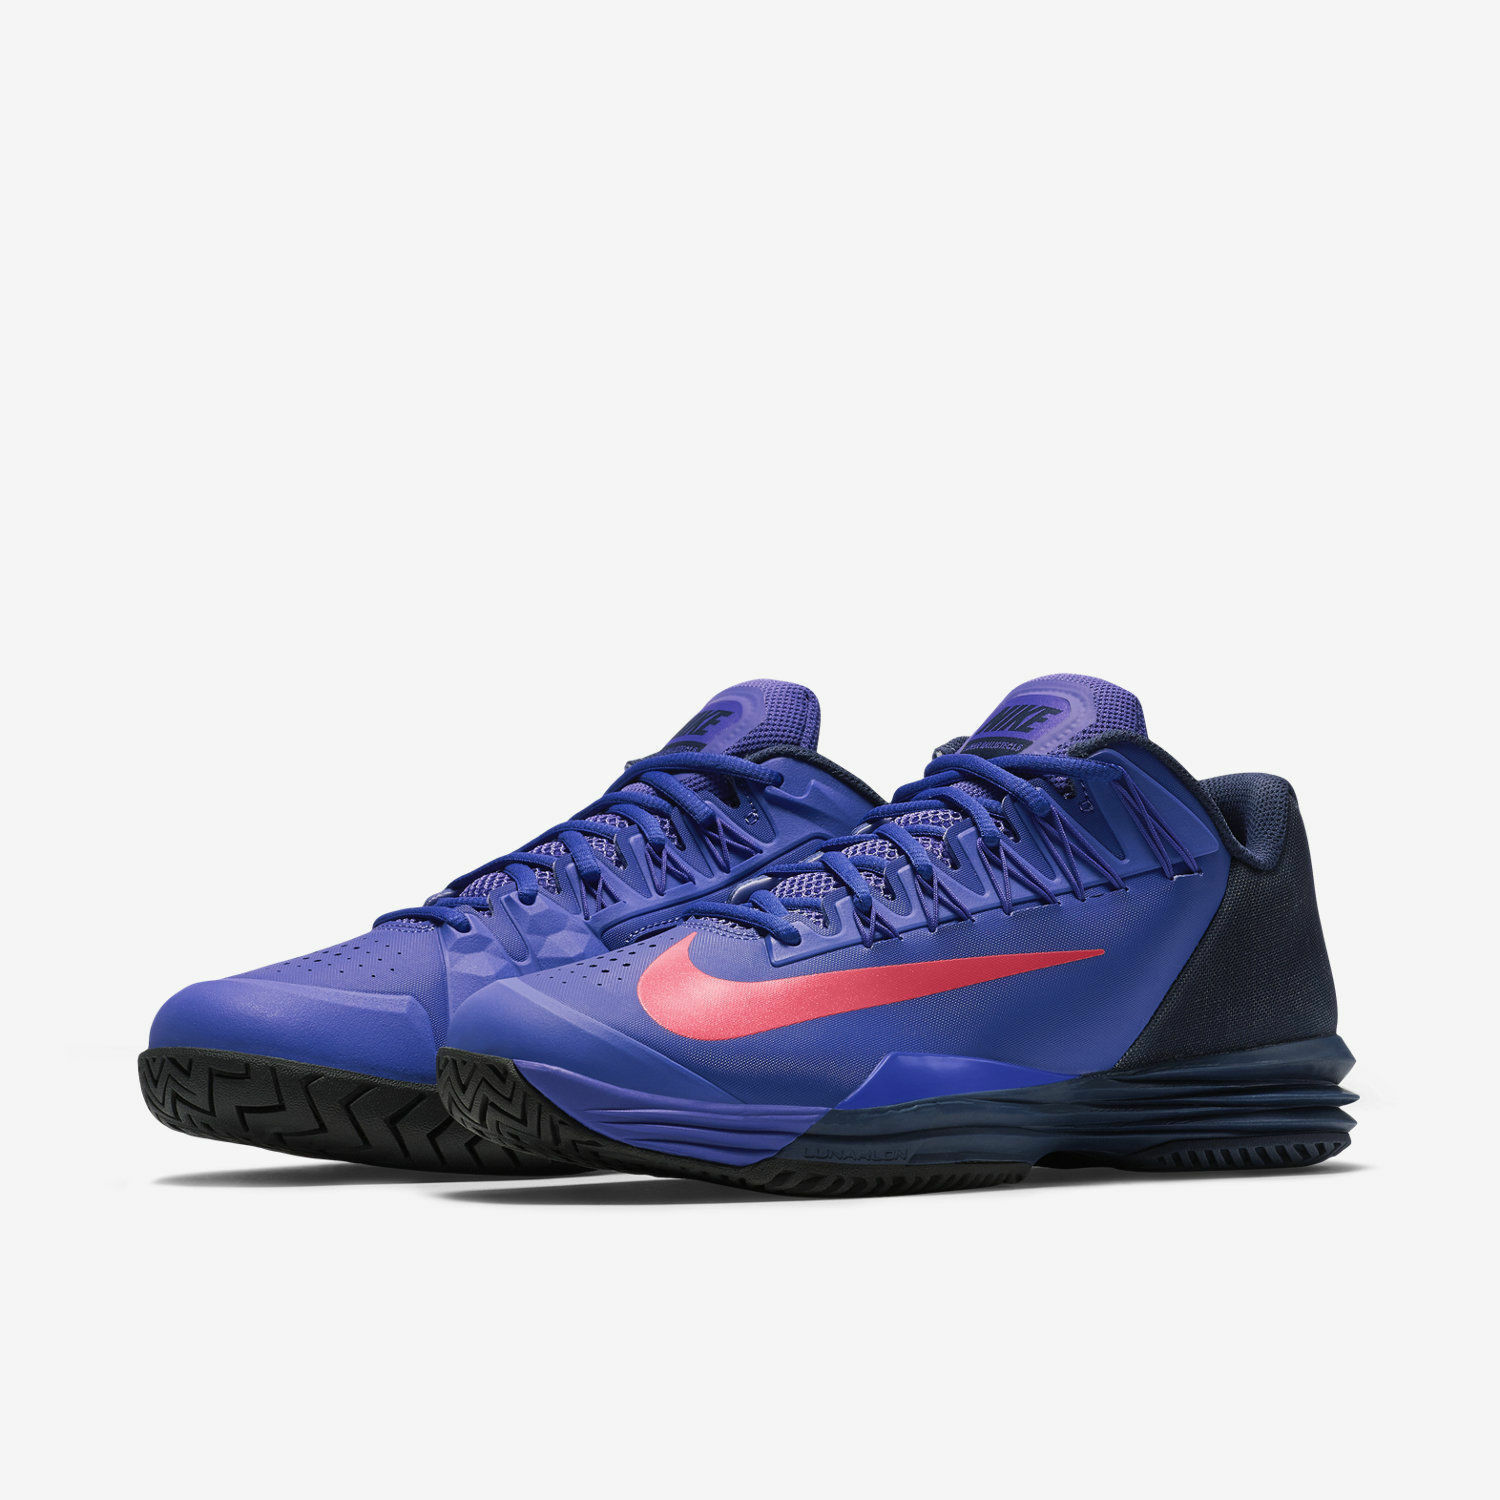 Nike Lunar Ballistec 1.5 Men's Shoes Persian/Violet 705285-584  SIZE 15